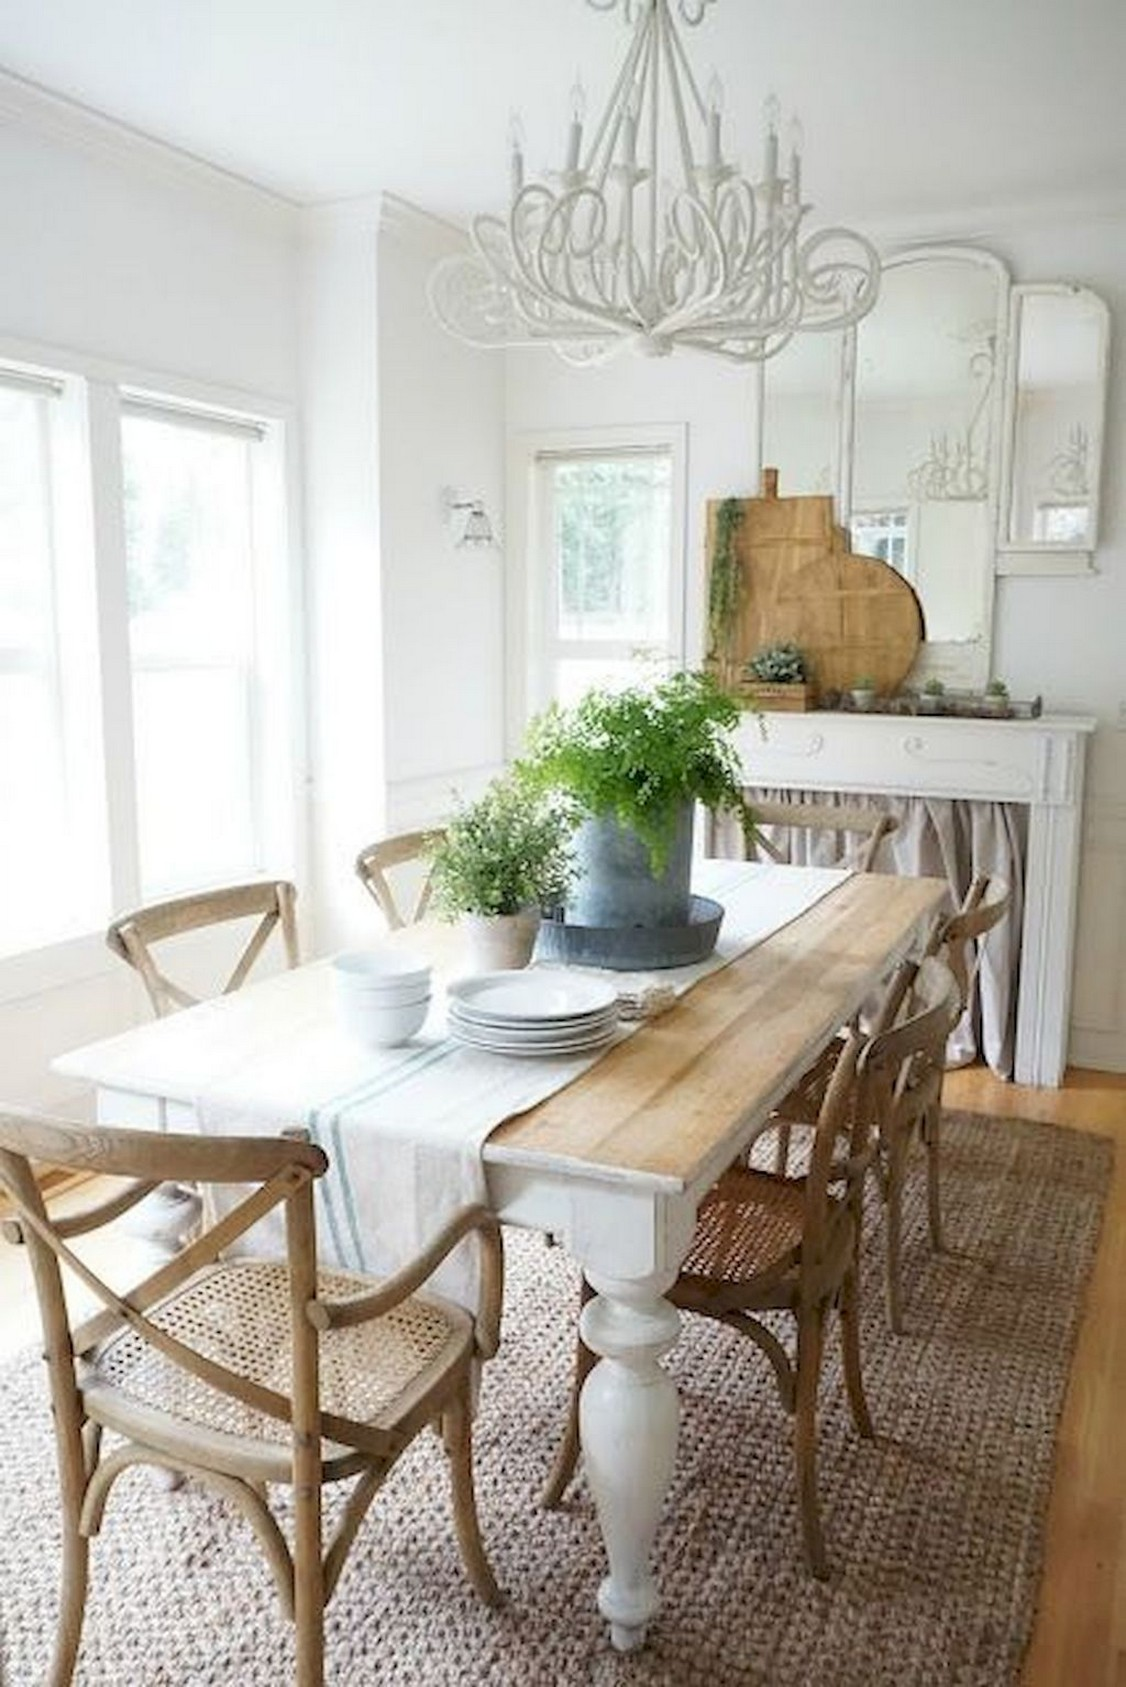 86 Different Types Of Dining Chairs Home Decor 72